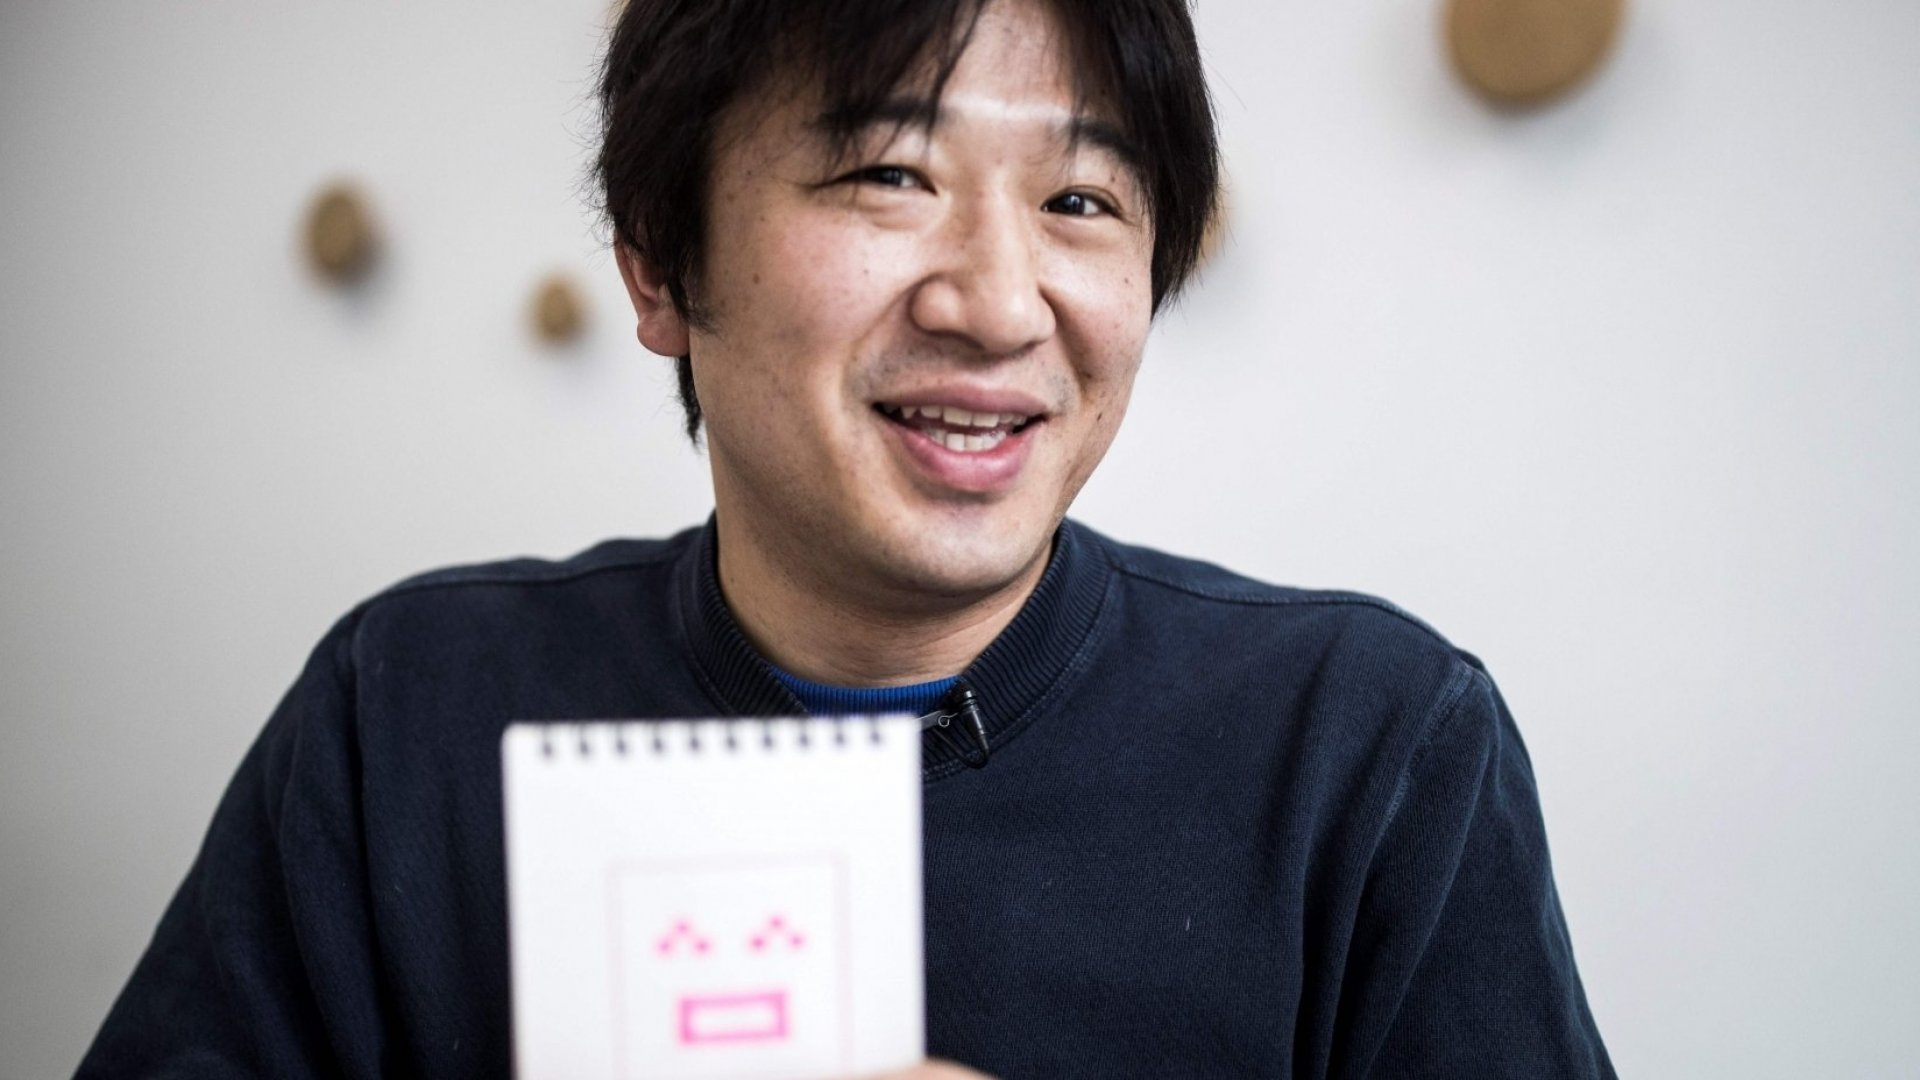 Who Created Emojis? A 25-Year-Old Developer on a Deadline